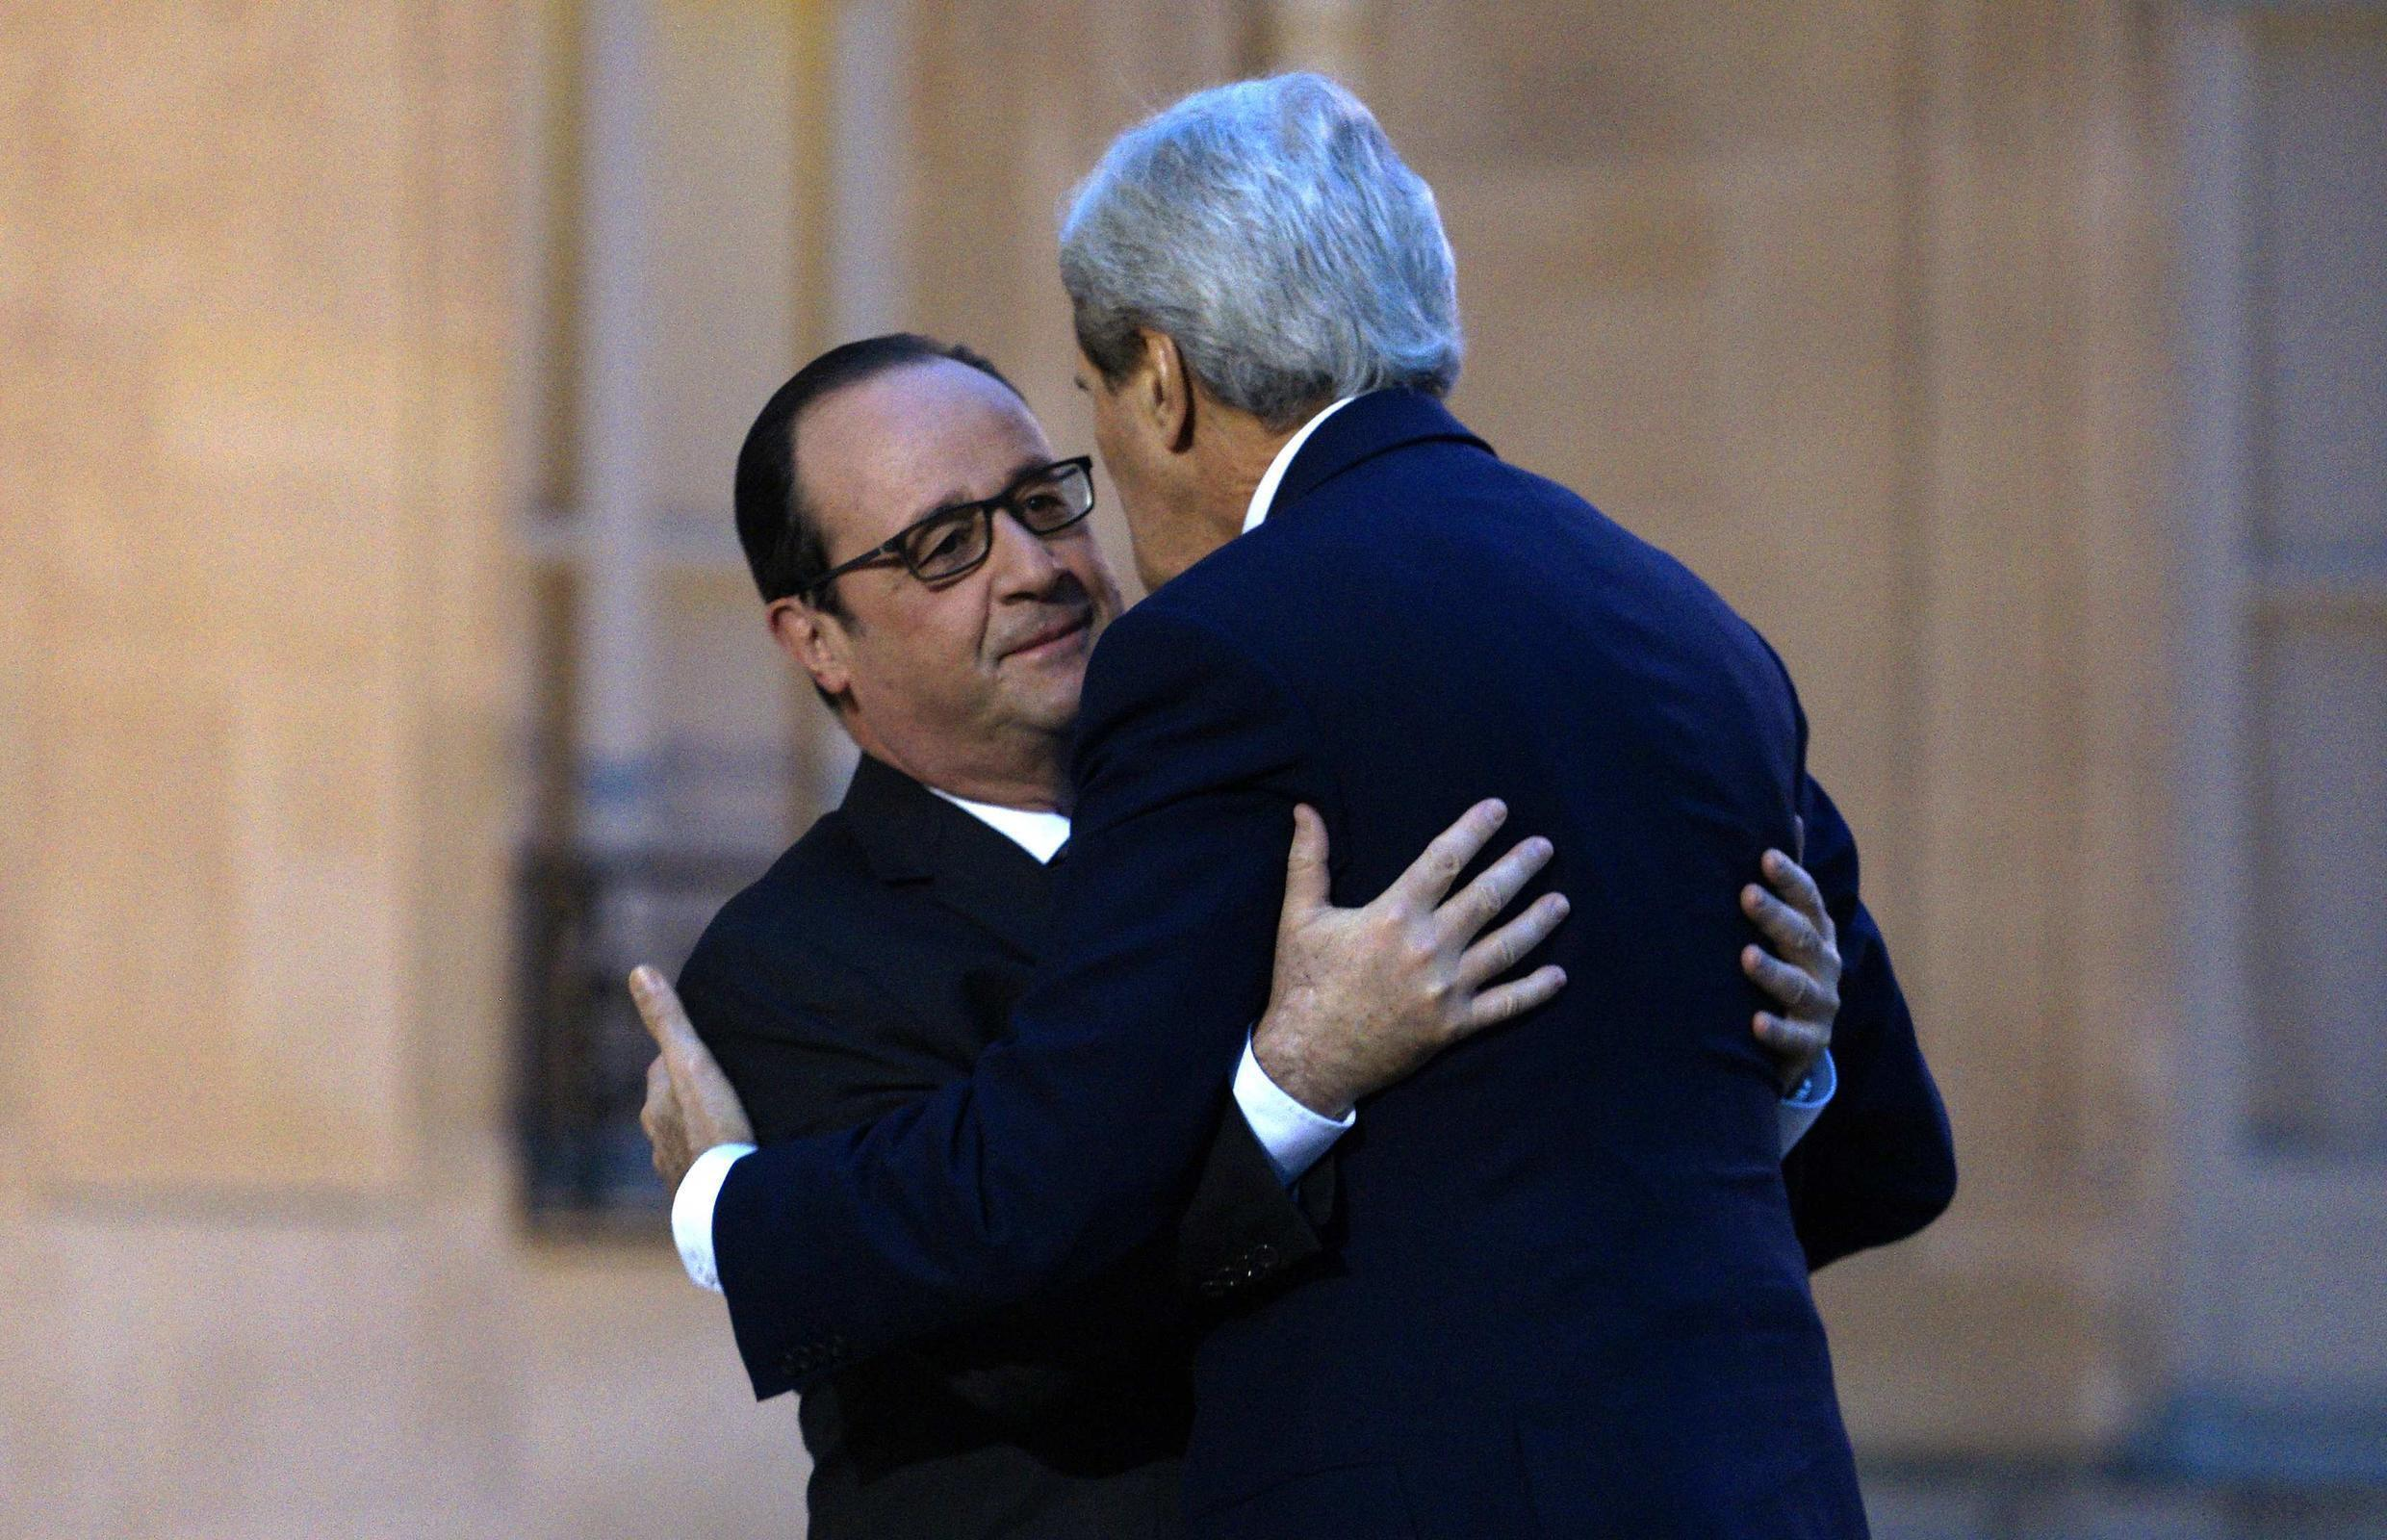 French President Francois Hollande embraces U.S. Secretary of State John Kerry upon Kerry's arrival at Elysee Palace in Paris, 16 January 2015.